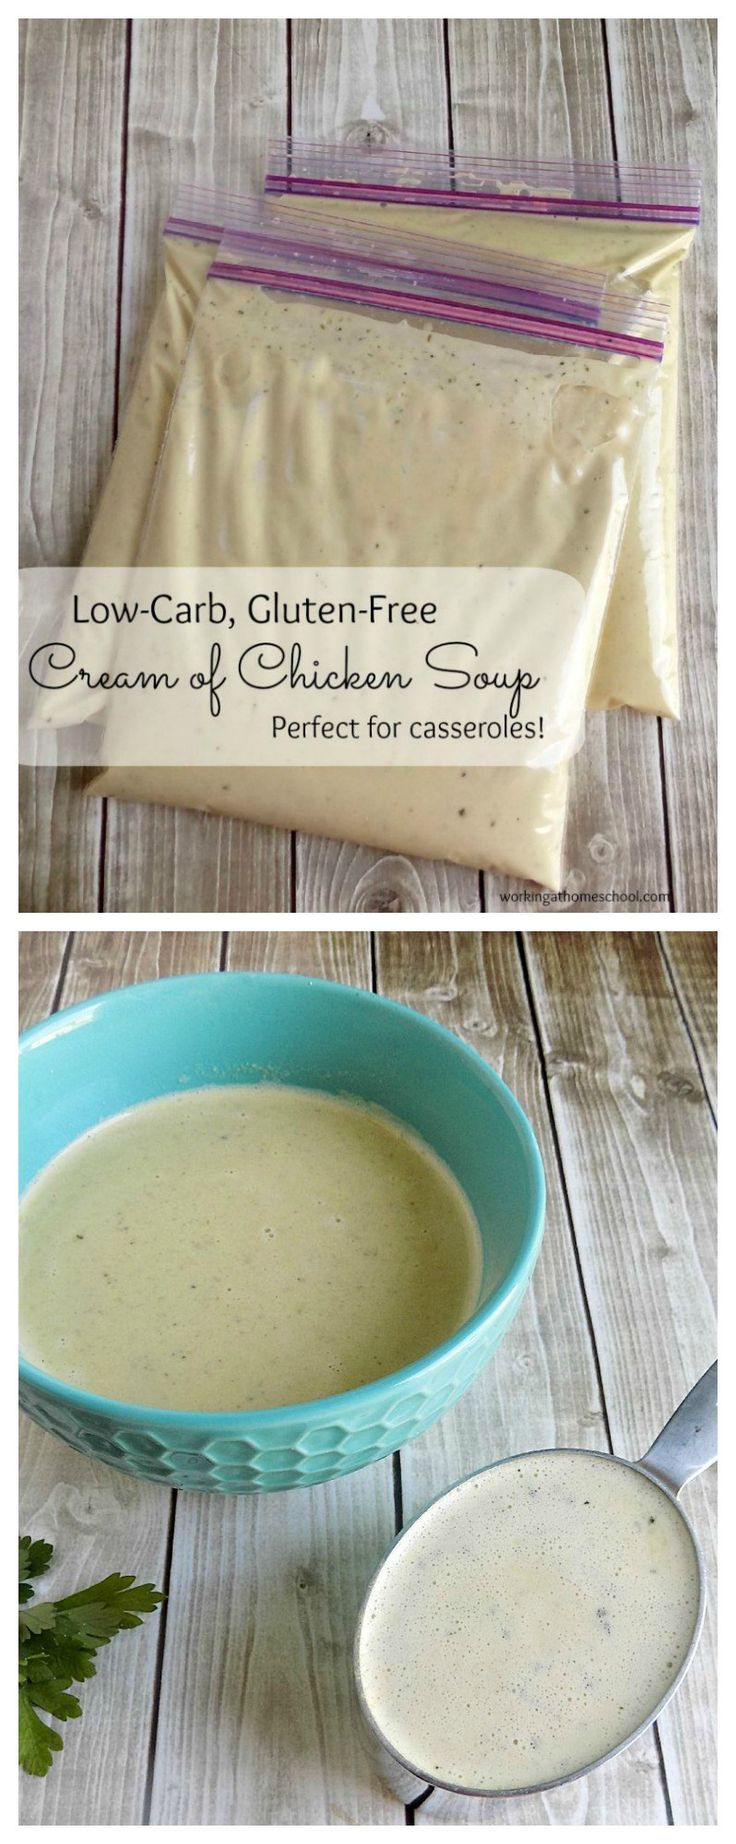 Low carb keto-friendly cream of chicken soup! This freezable recipe works for Trim Healthy Mama and Atkins, too! Perfect by itself or in casseroles.